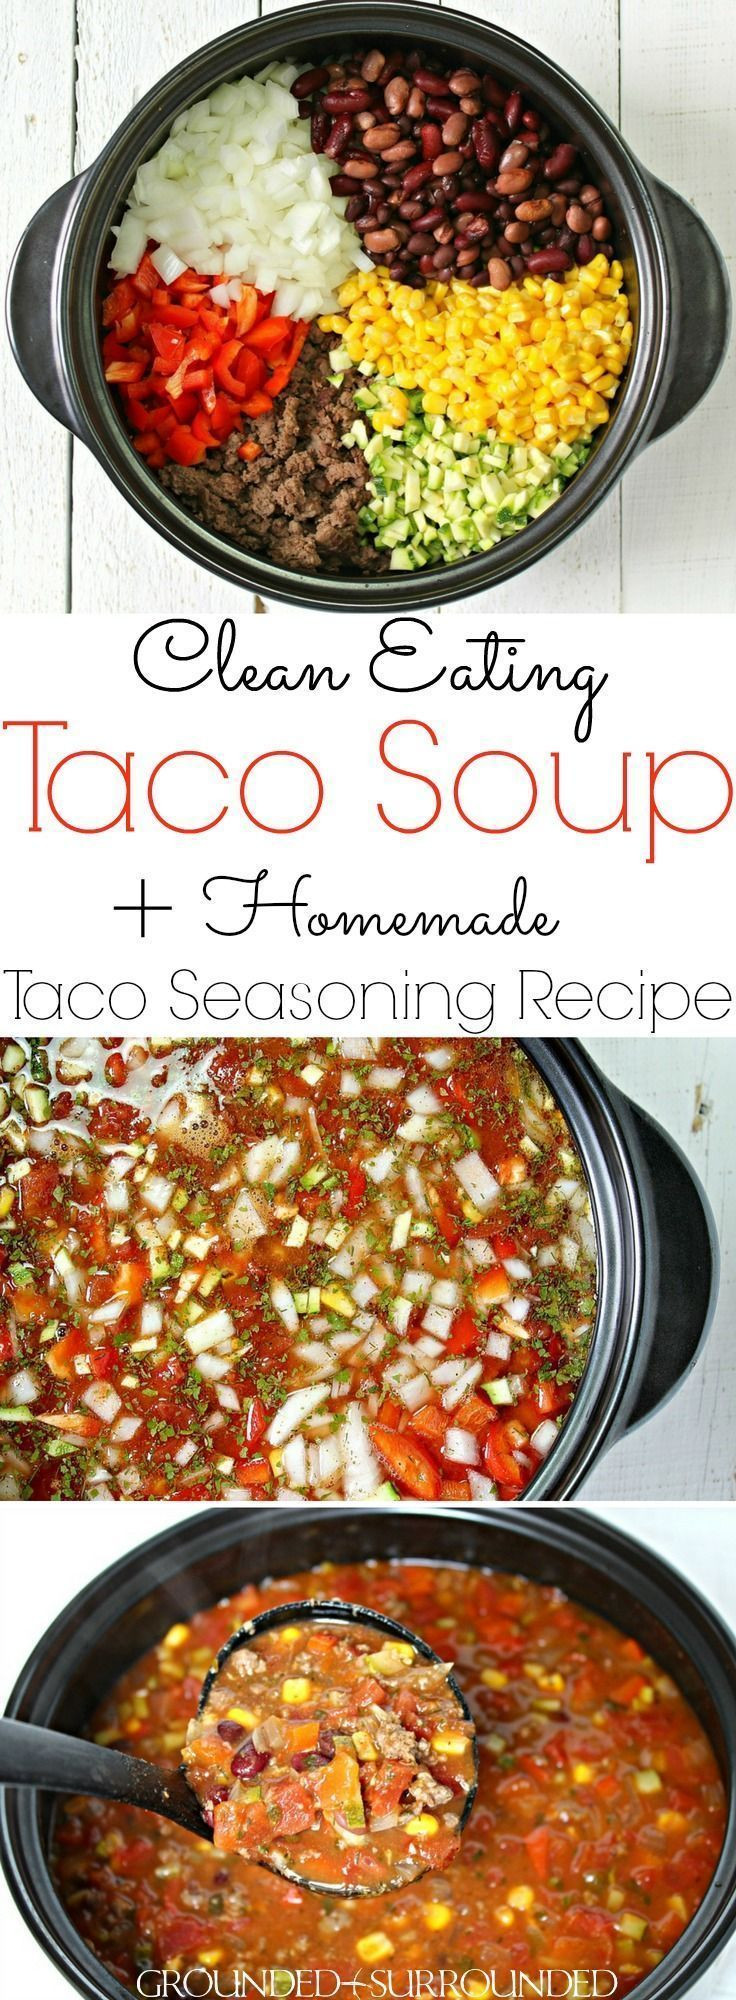 Healthy Taco Soup With Ground Beef  Taco Soup Opskrift